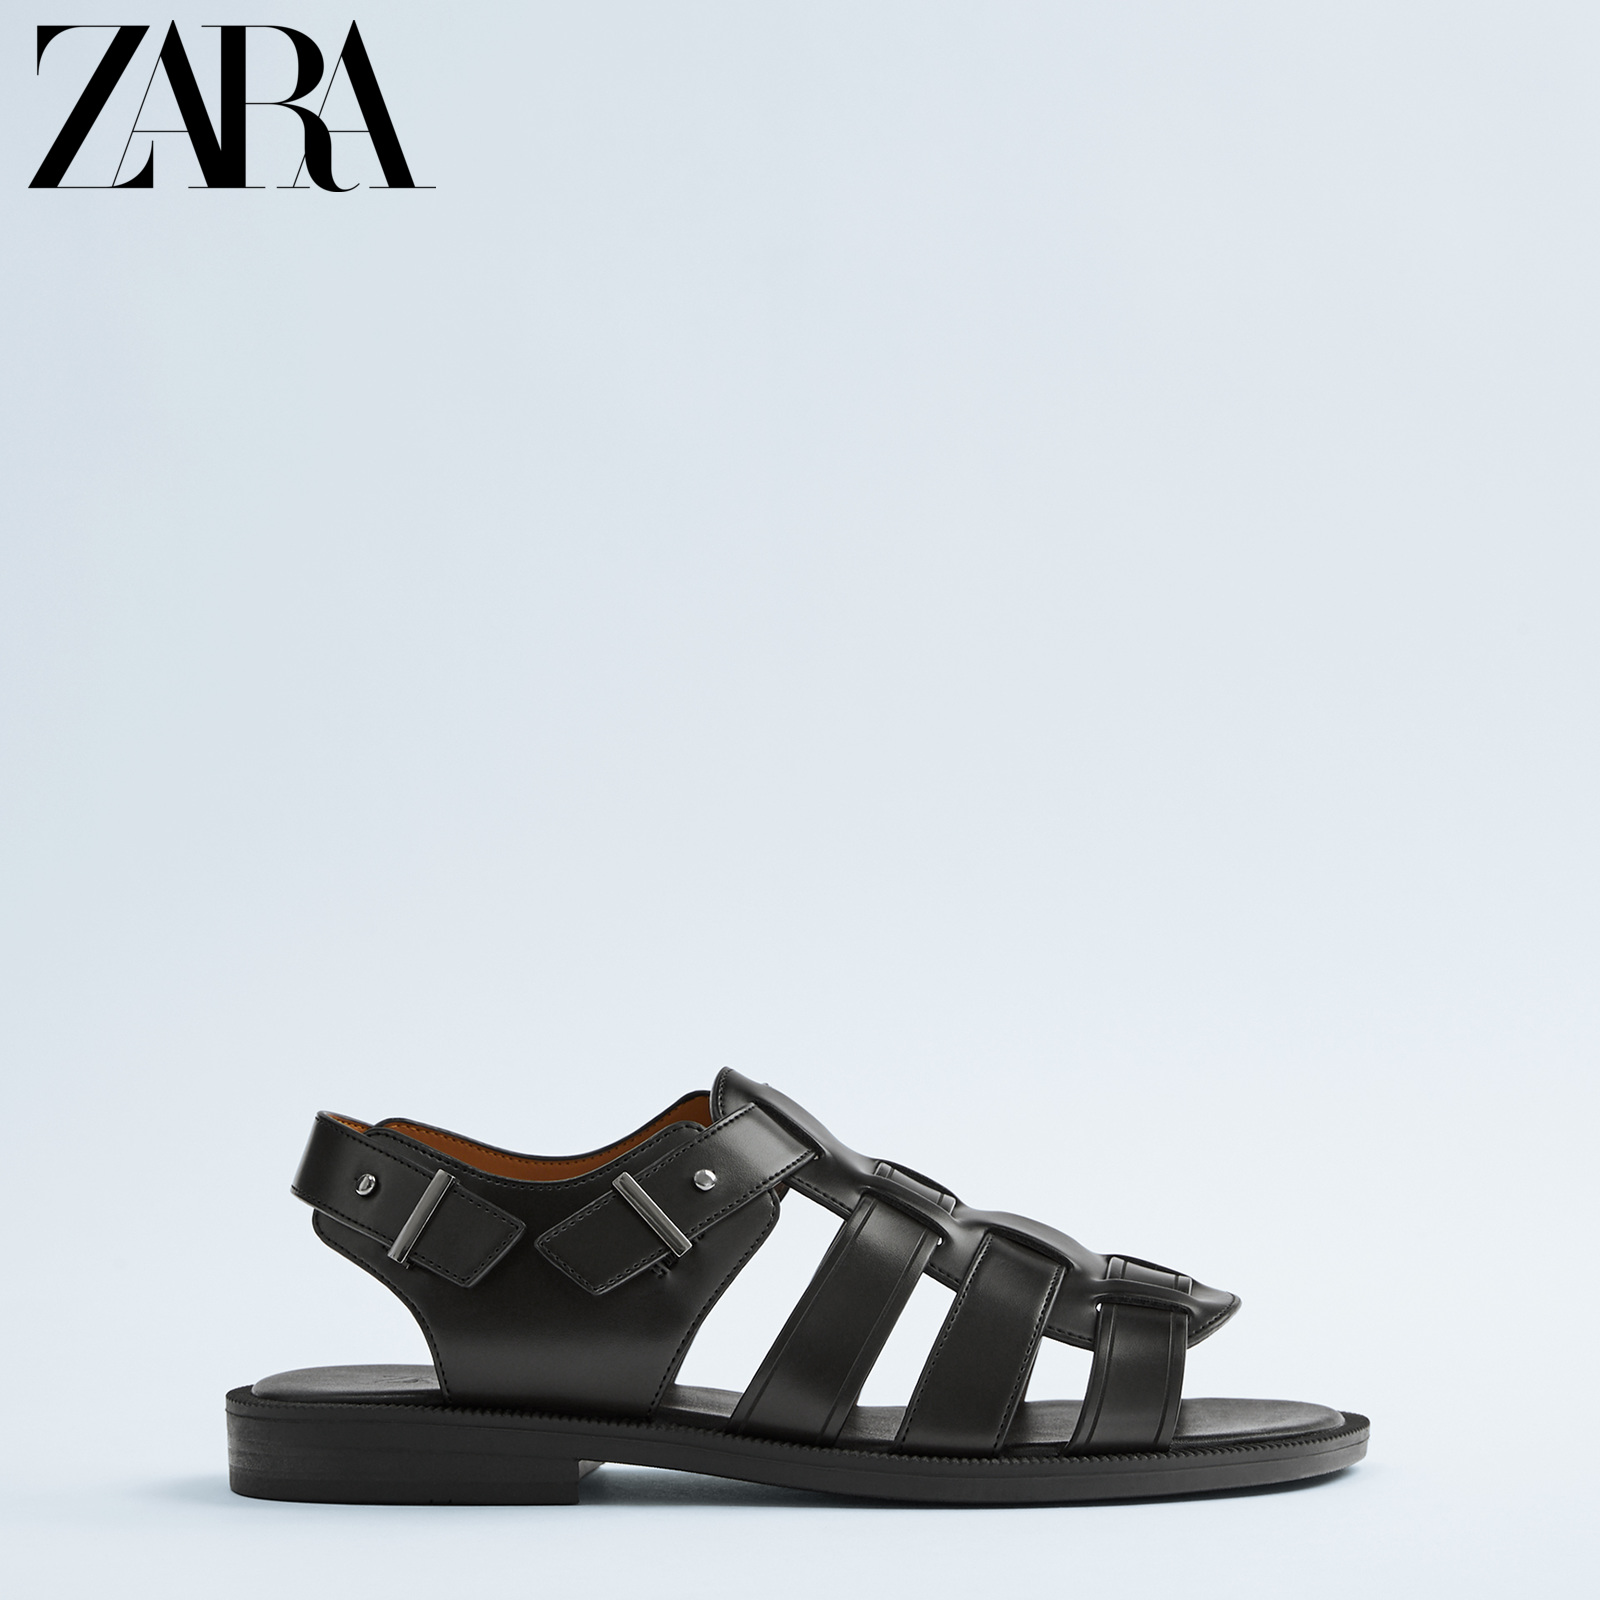 Zara new men's shoes black belt decorated sandals 12714520040